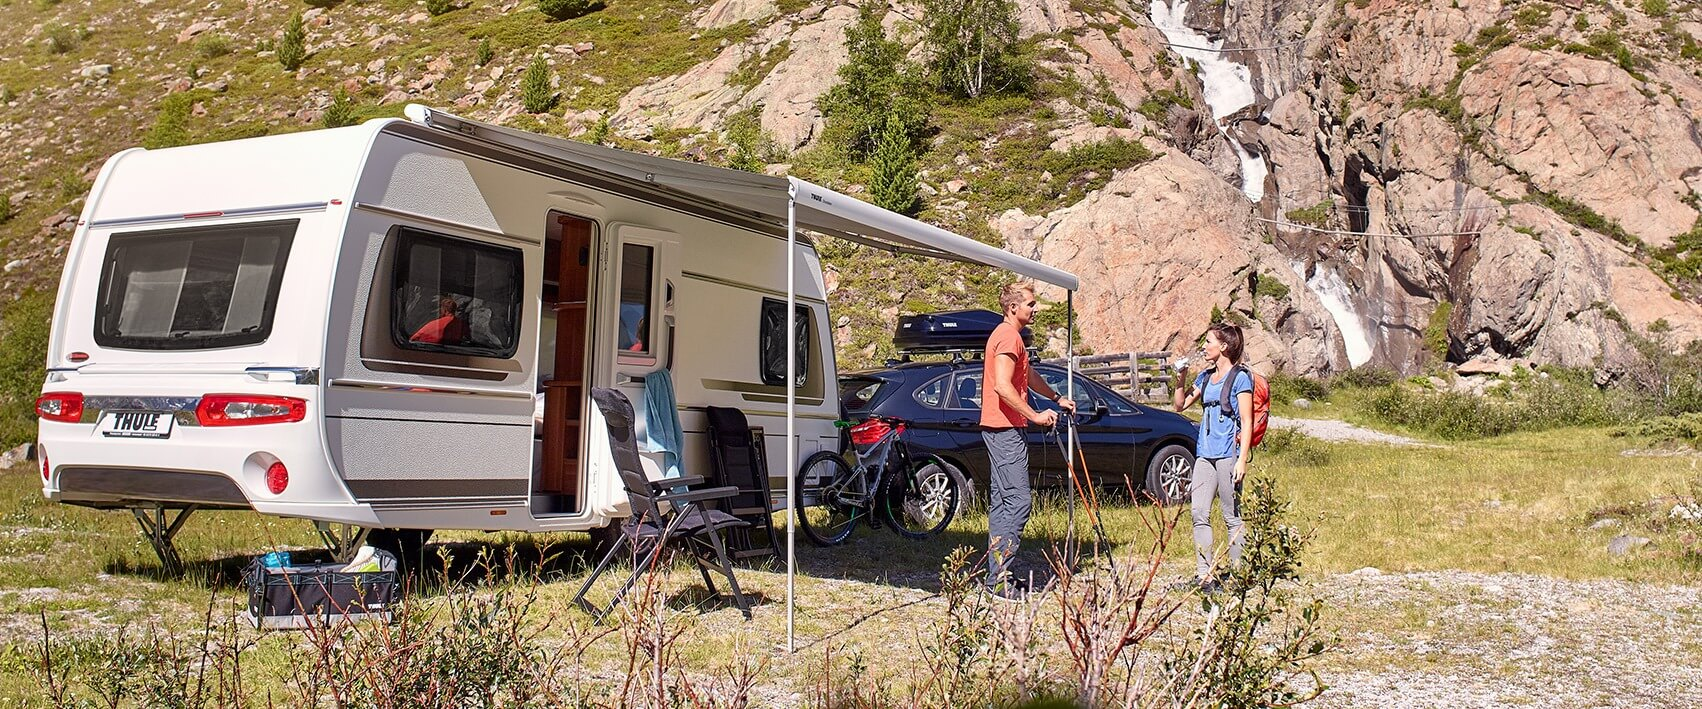 Thule Omnistor 6300 Awning